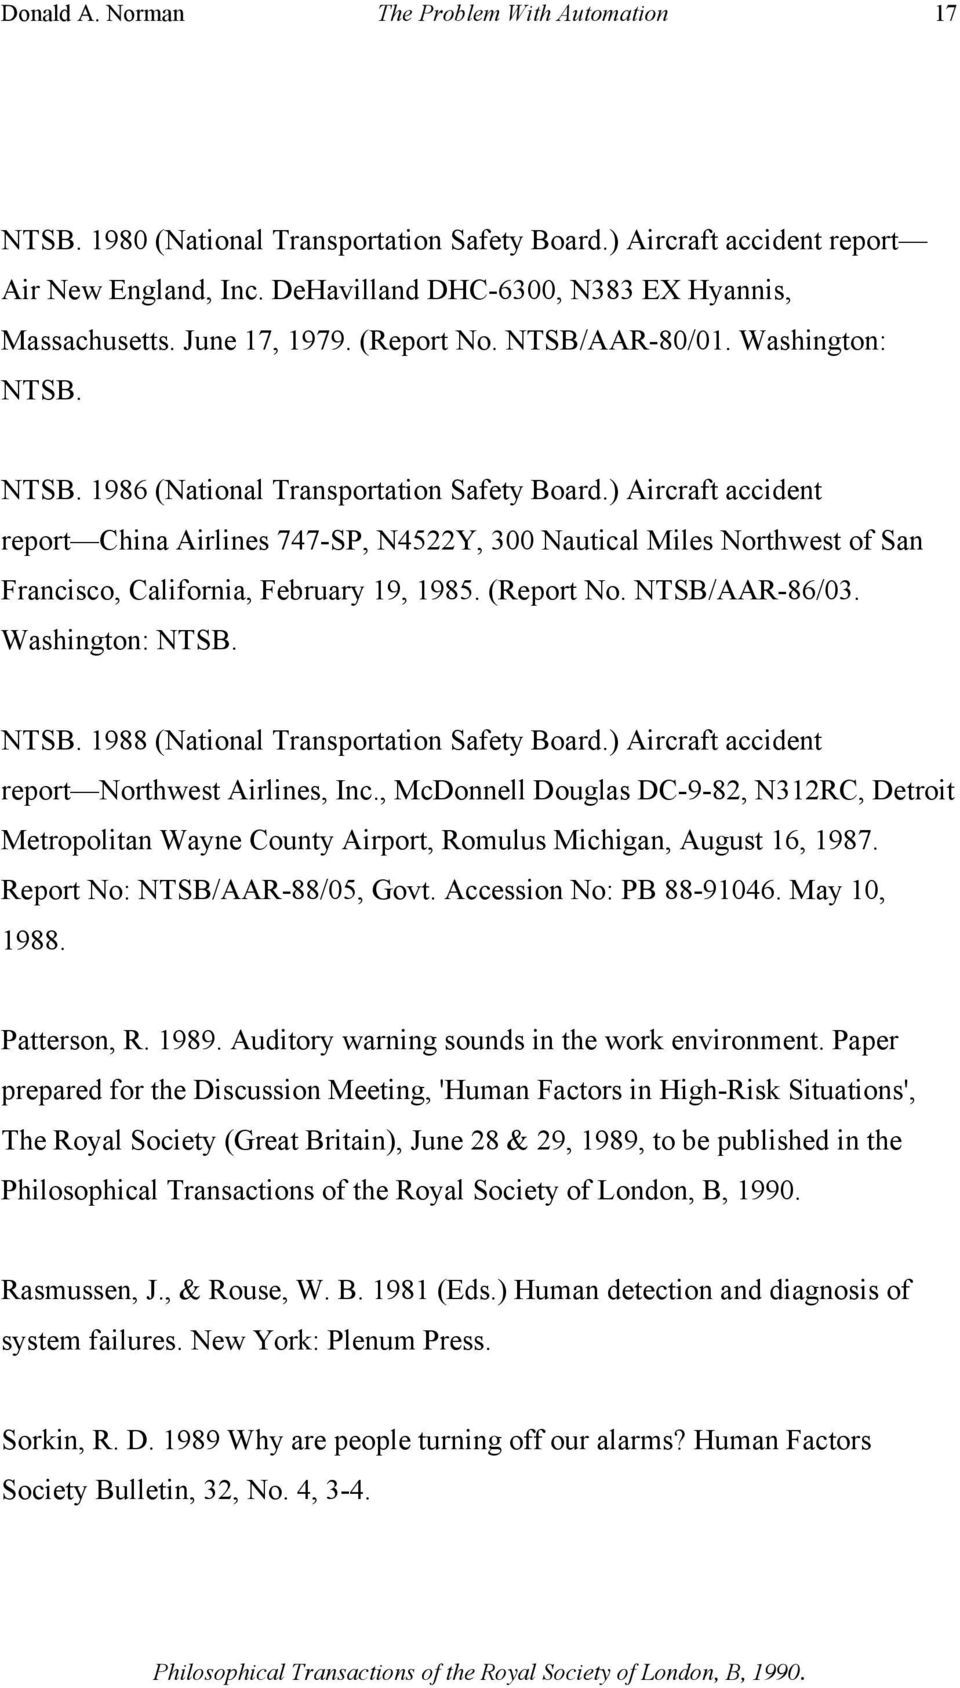 ) Aircraft accident report China Airlines 747-SP, N4522Y, 300 Nautical Miles Northwest of San Francisco, California, February 19, 1985. (Report No. NTSB/AAR-86/03. Washington: NTSB. NTSB. 1988 (National Transportation Safety Board.